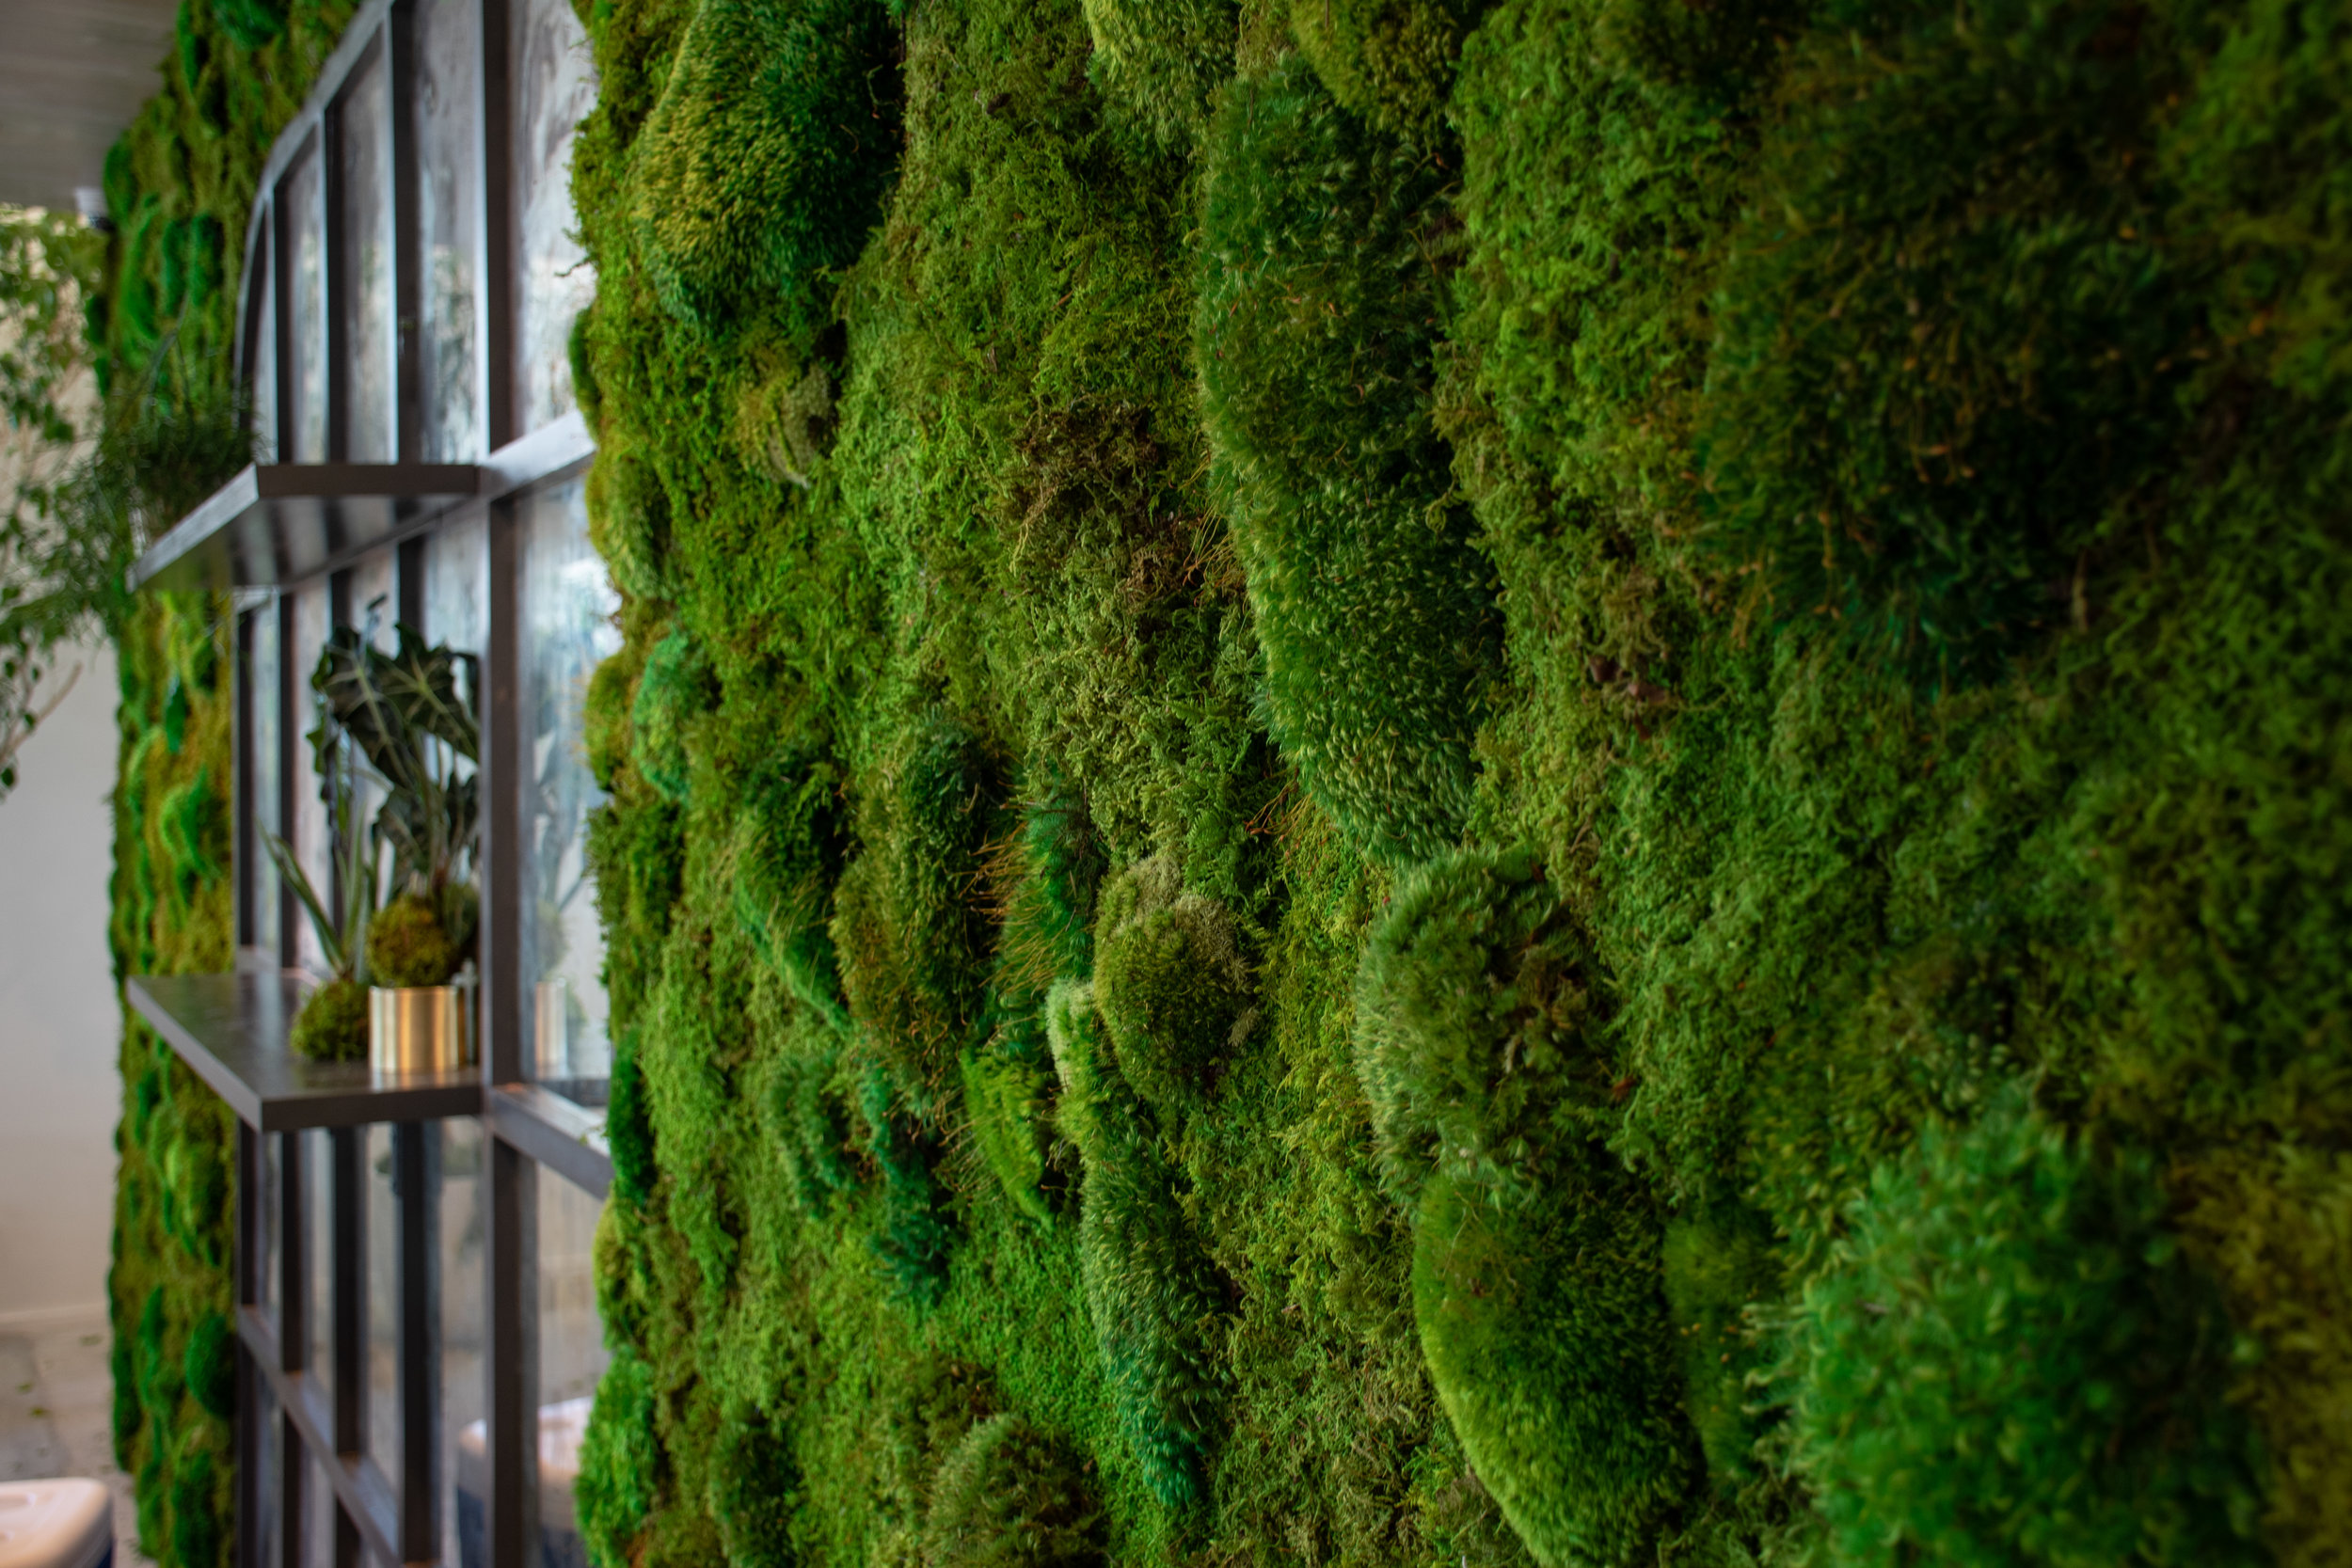 Biophilia - An introduction to the theory and design principles that empower meaningful connection between people and nature